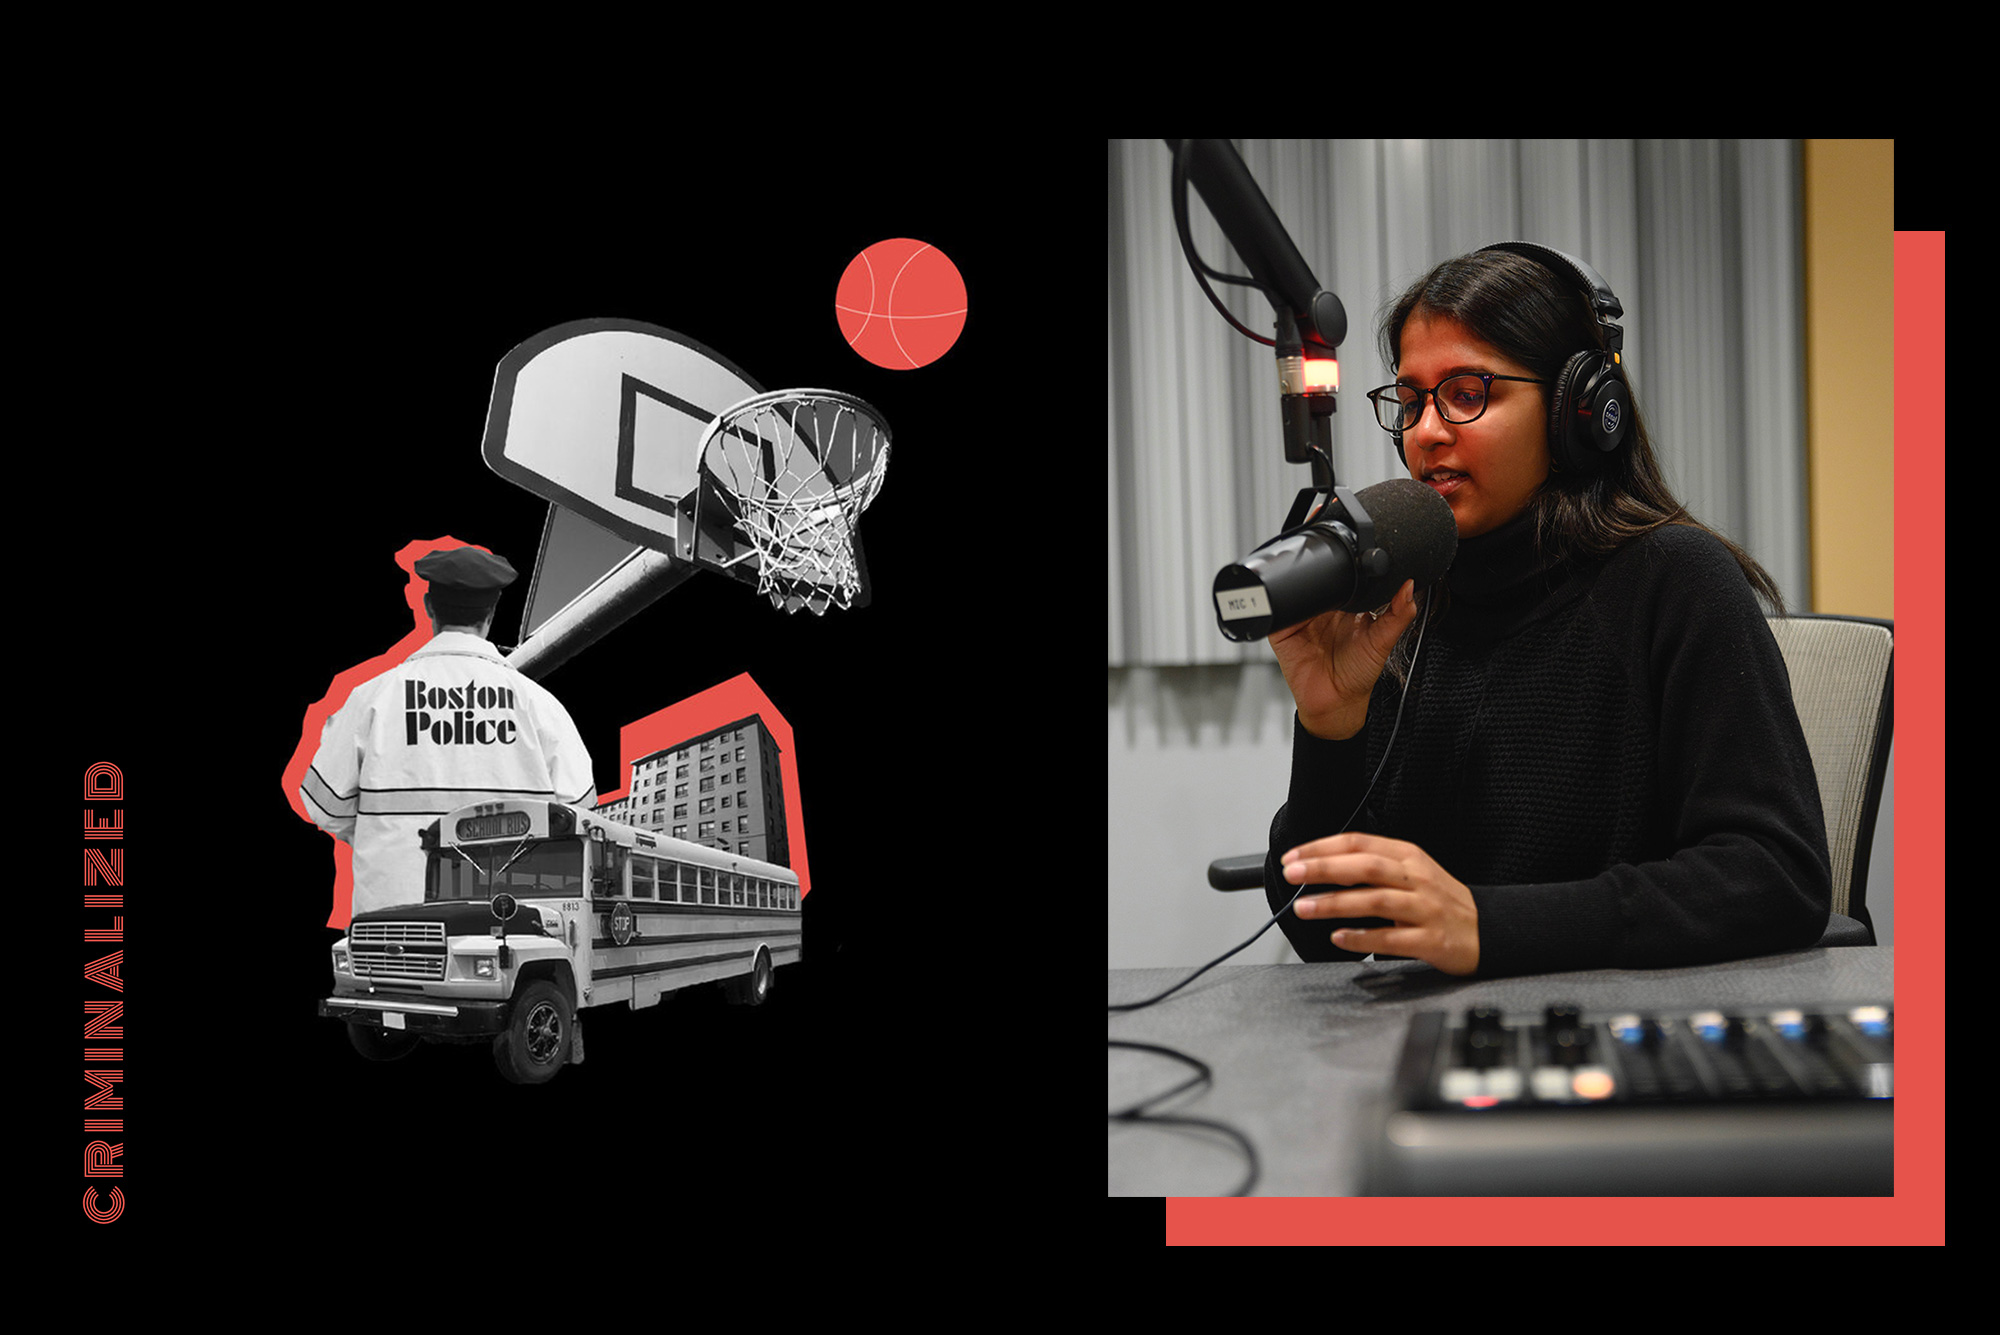 "On the left, the word ""Criminalized"" is written vertically, and then an Image created with a series of overlayed photos with red accents on a black background, is to the left, which is the cover of the Criminalized podcast. The images seen are a basketball hoop, a school bus, and someone in a Boston Police jacket. To the right, Photo of Sarika Ram (CAS'21) in a black shirt and pants in a podcast recording studio, presumably recording her podcast Criminalized. Sarika touches the mic as she speaks into it."